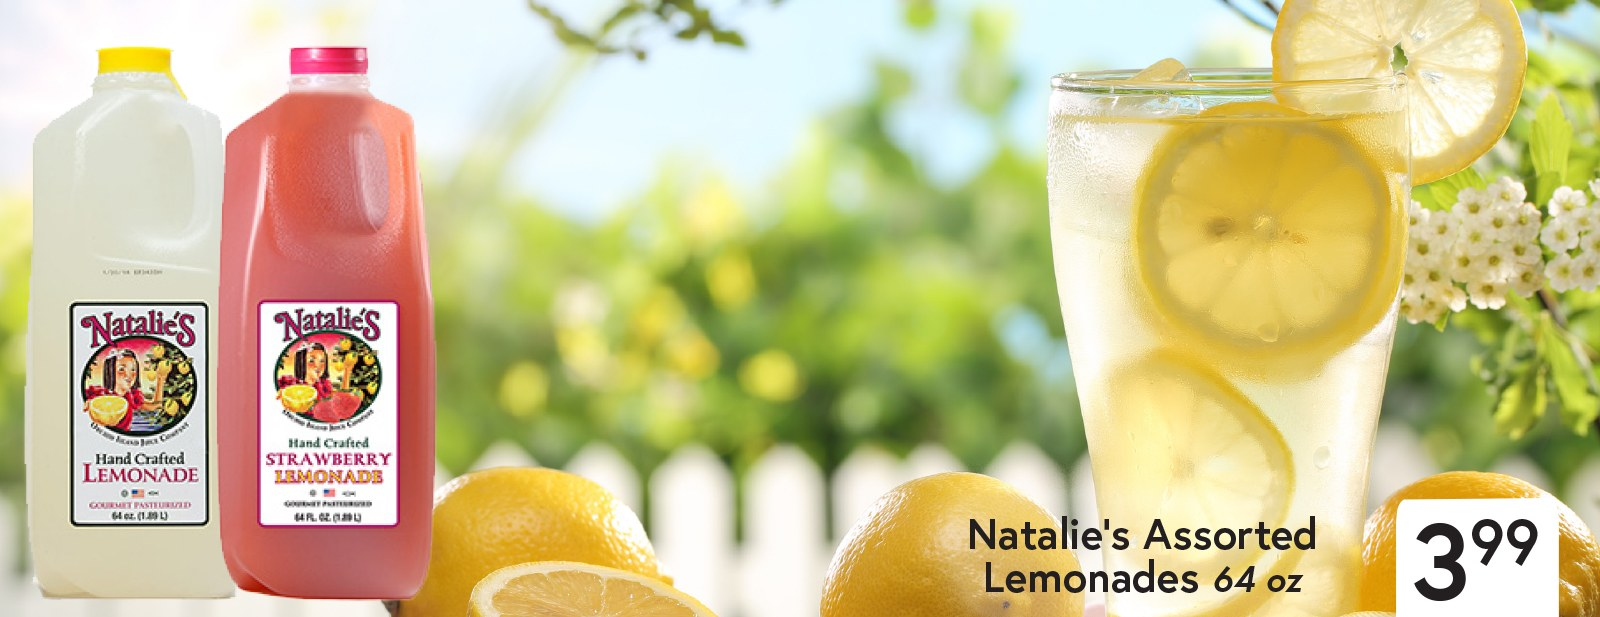 Natalie's Assorted Lemonades $3.99 64 oz